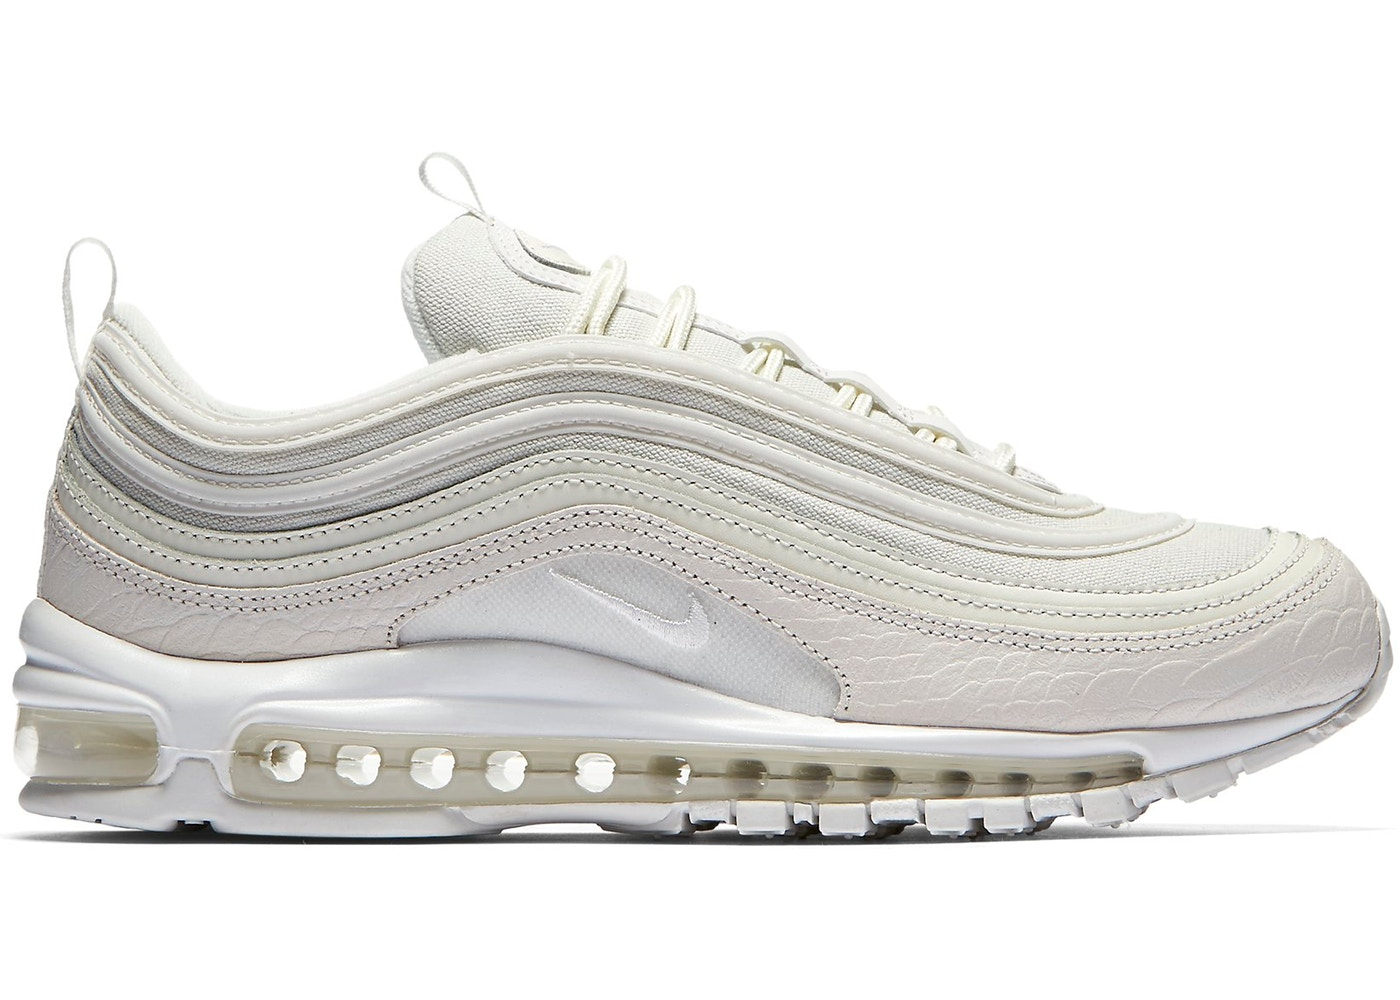 Nike's Air Max 97 Returns in OG